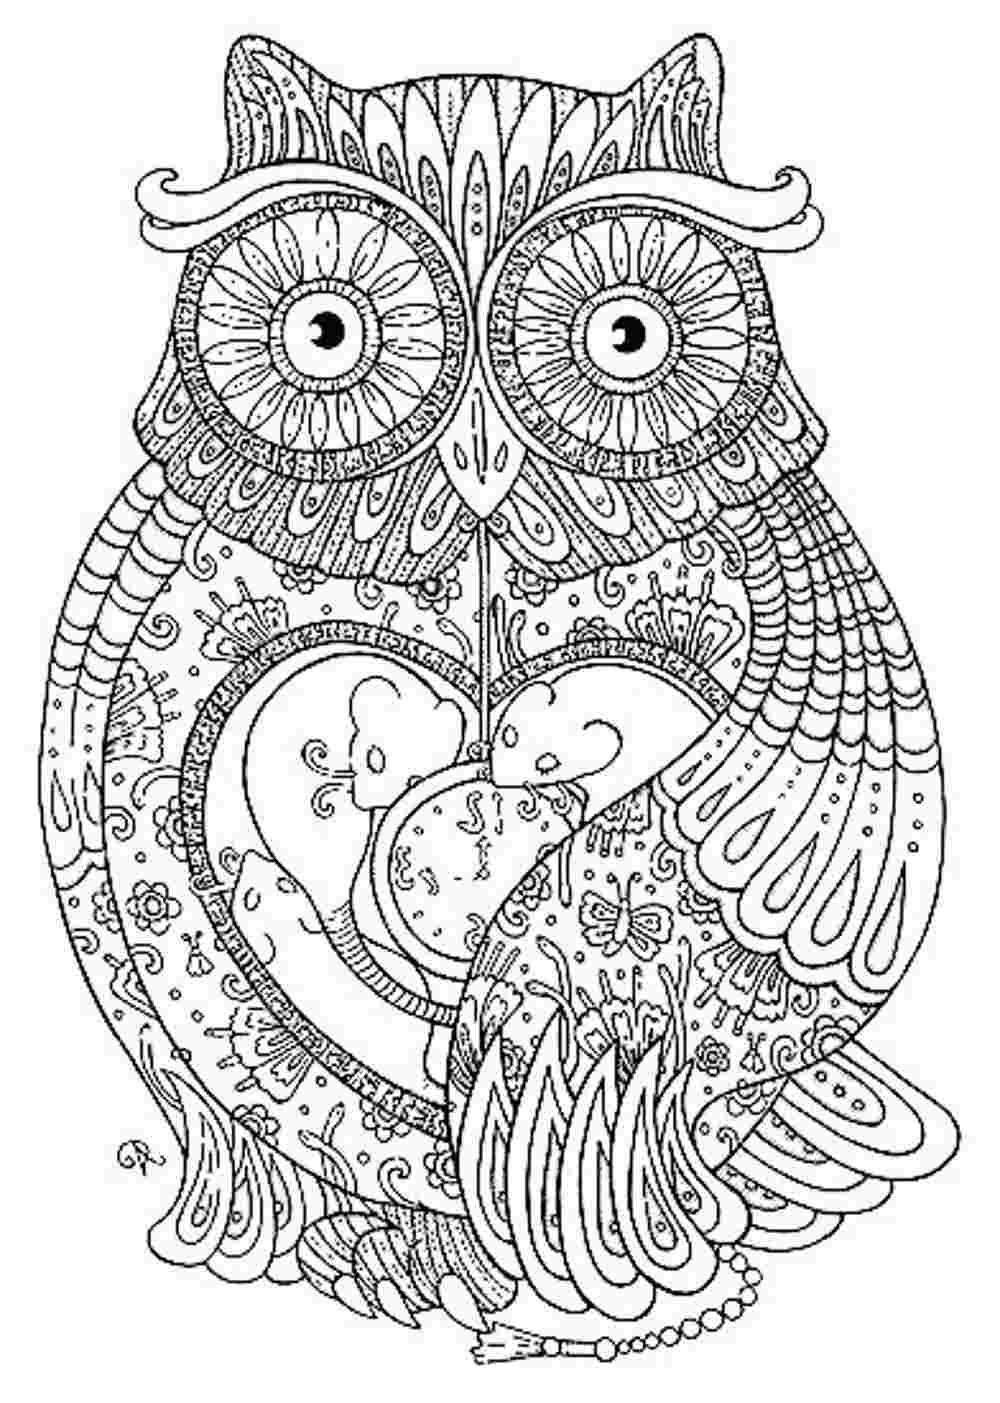 j coloring pages for older kids - photo #31